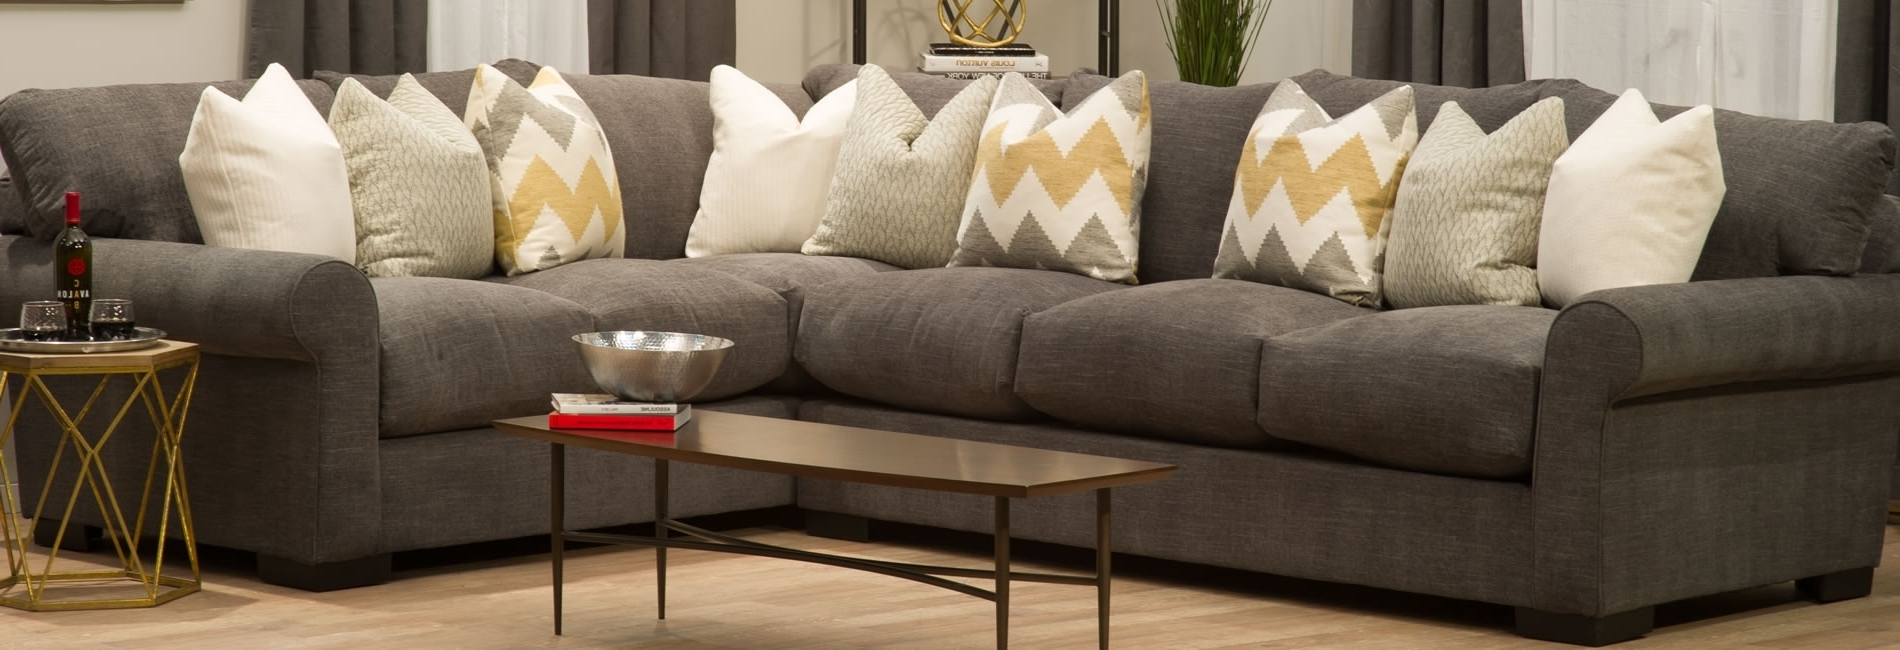 Fashionable Collection Sectional Sofas Atlanta Ga – Buildsimplehome With Sectional Sofas At Atlanta (View 10 of 20)